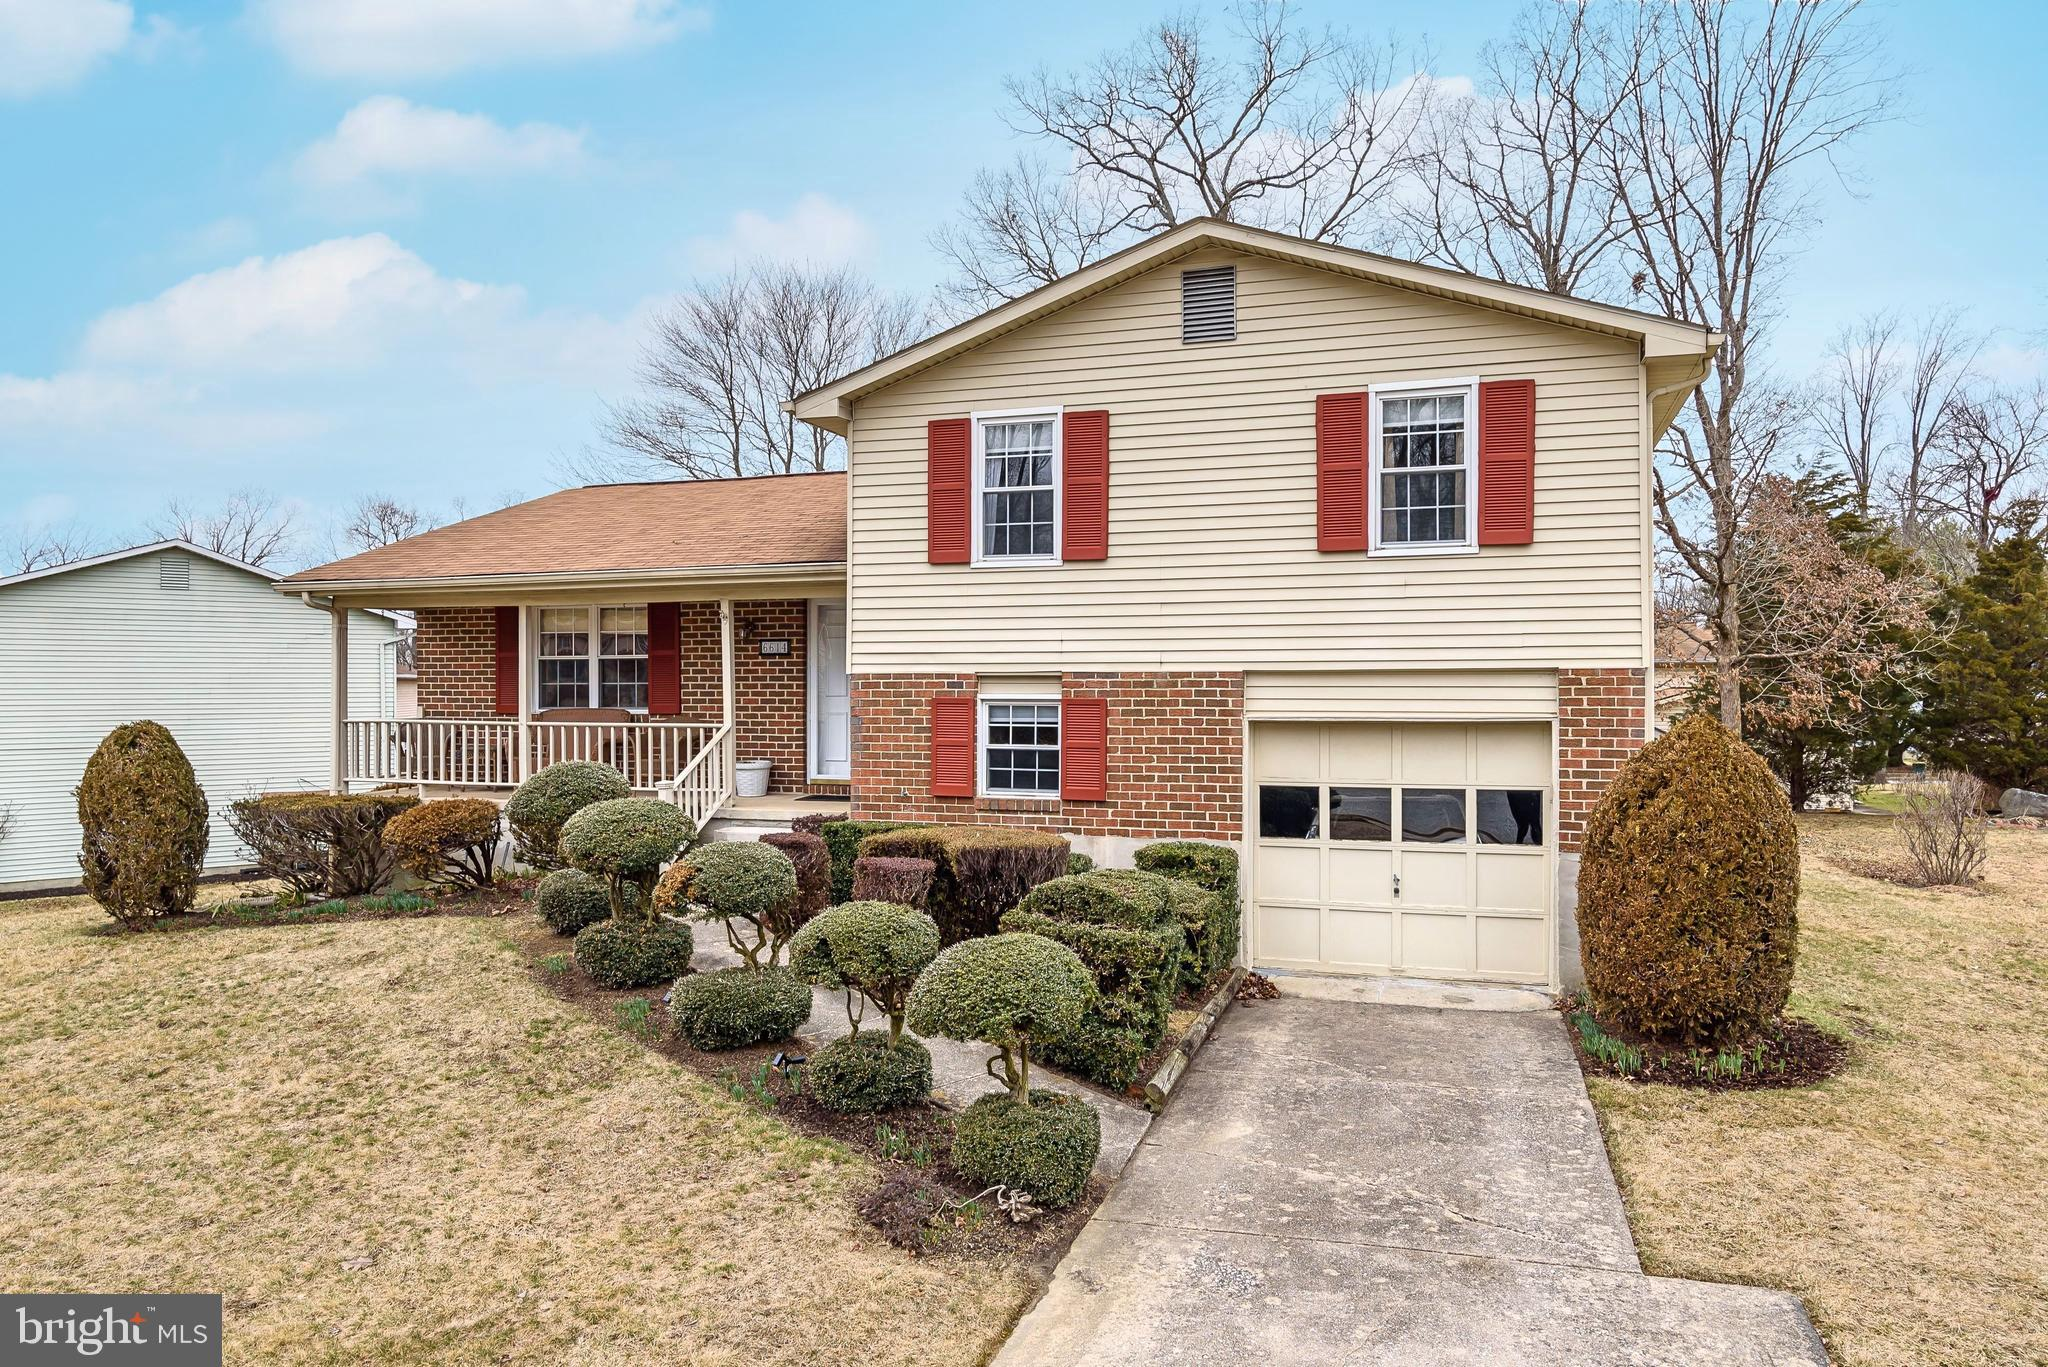 Lovely, well cared for 3 bedroom, 2.5 bath split level home in Catonsville sits on a beautiful lot, on a quiet street. Enjoy relaxing evenings on your front porch watching the seasons change throughout the year.  Inside, on the main level the kitchen is open to the dining room and hall leading to the lower levels and living room. The lower level office could easily be turned into a 4th bedroom.  The lower level family room features a fireplace and sliding glass doors leading to the large backyard. Freshly painted throughout!